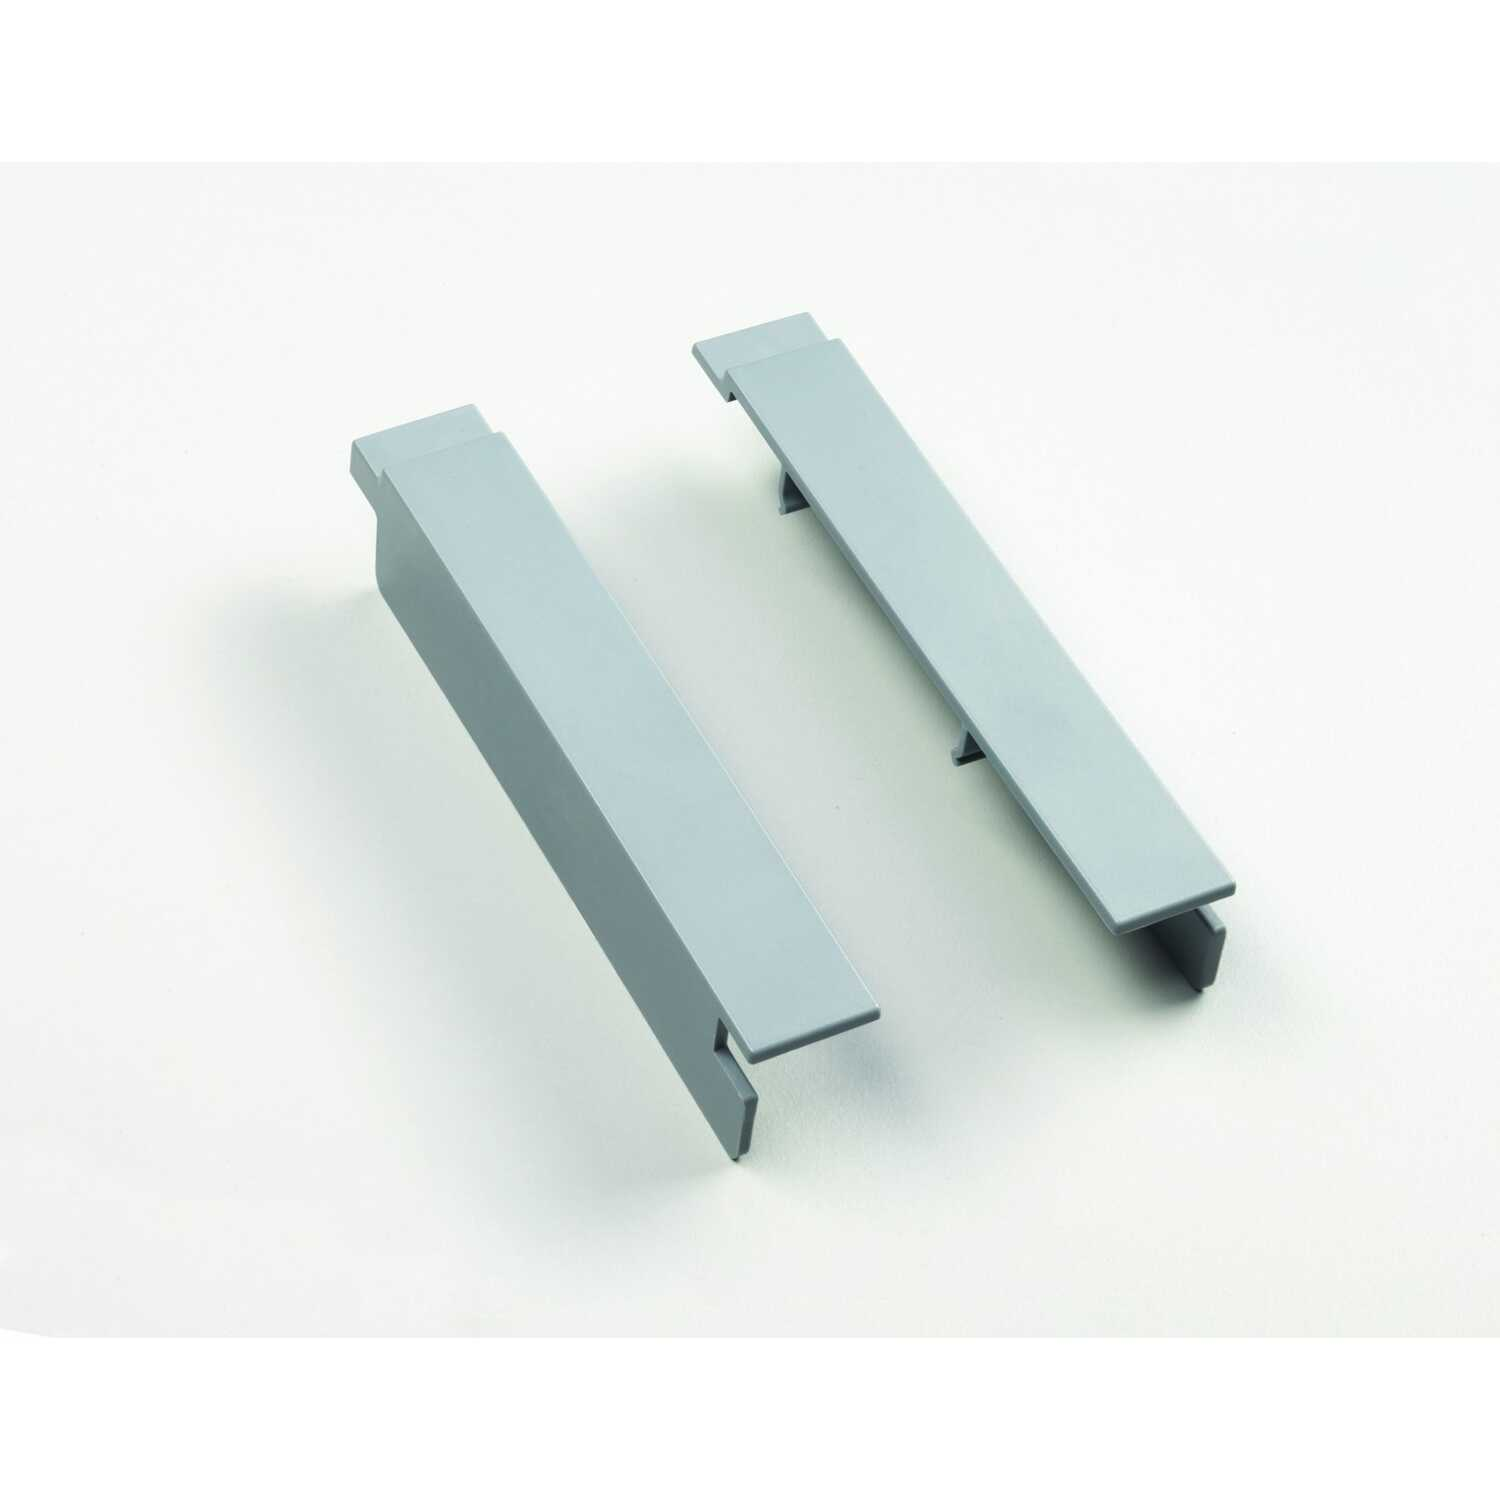 Craftsman  VersaTrack  1 in. W x 1 in. D x 5-1/2 in. H Plastic  Shelf Clips